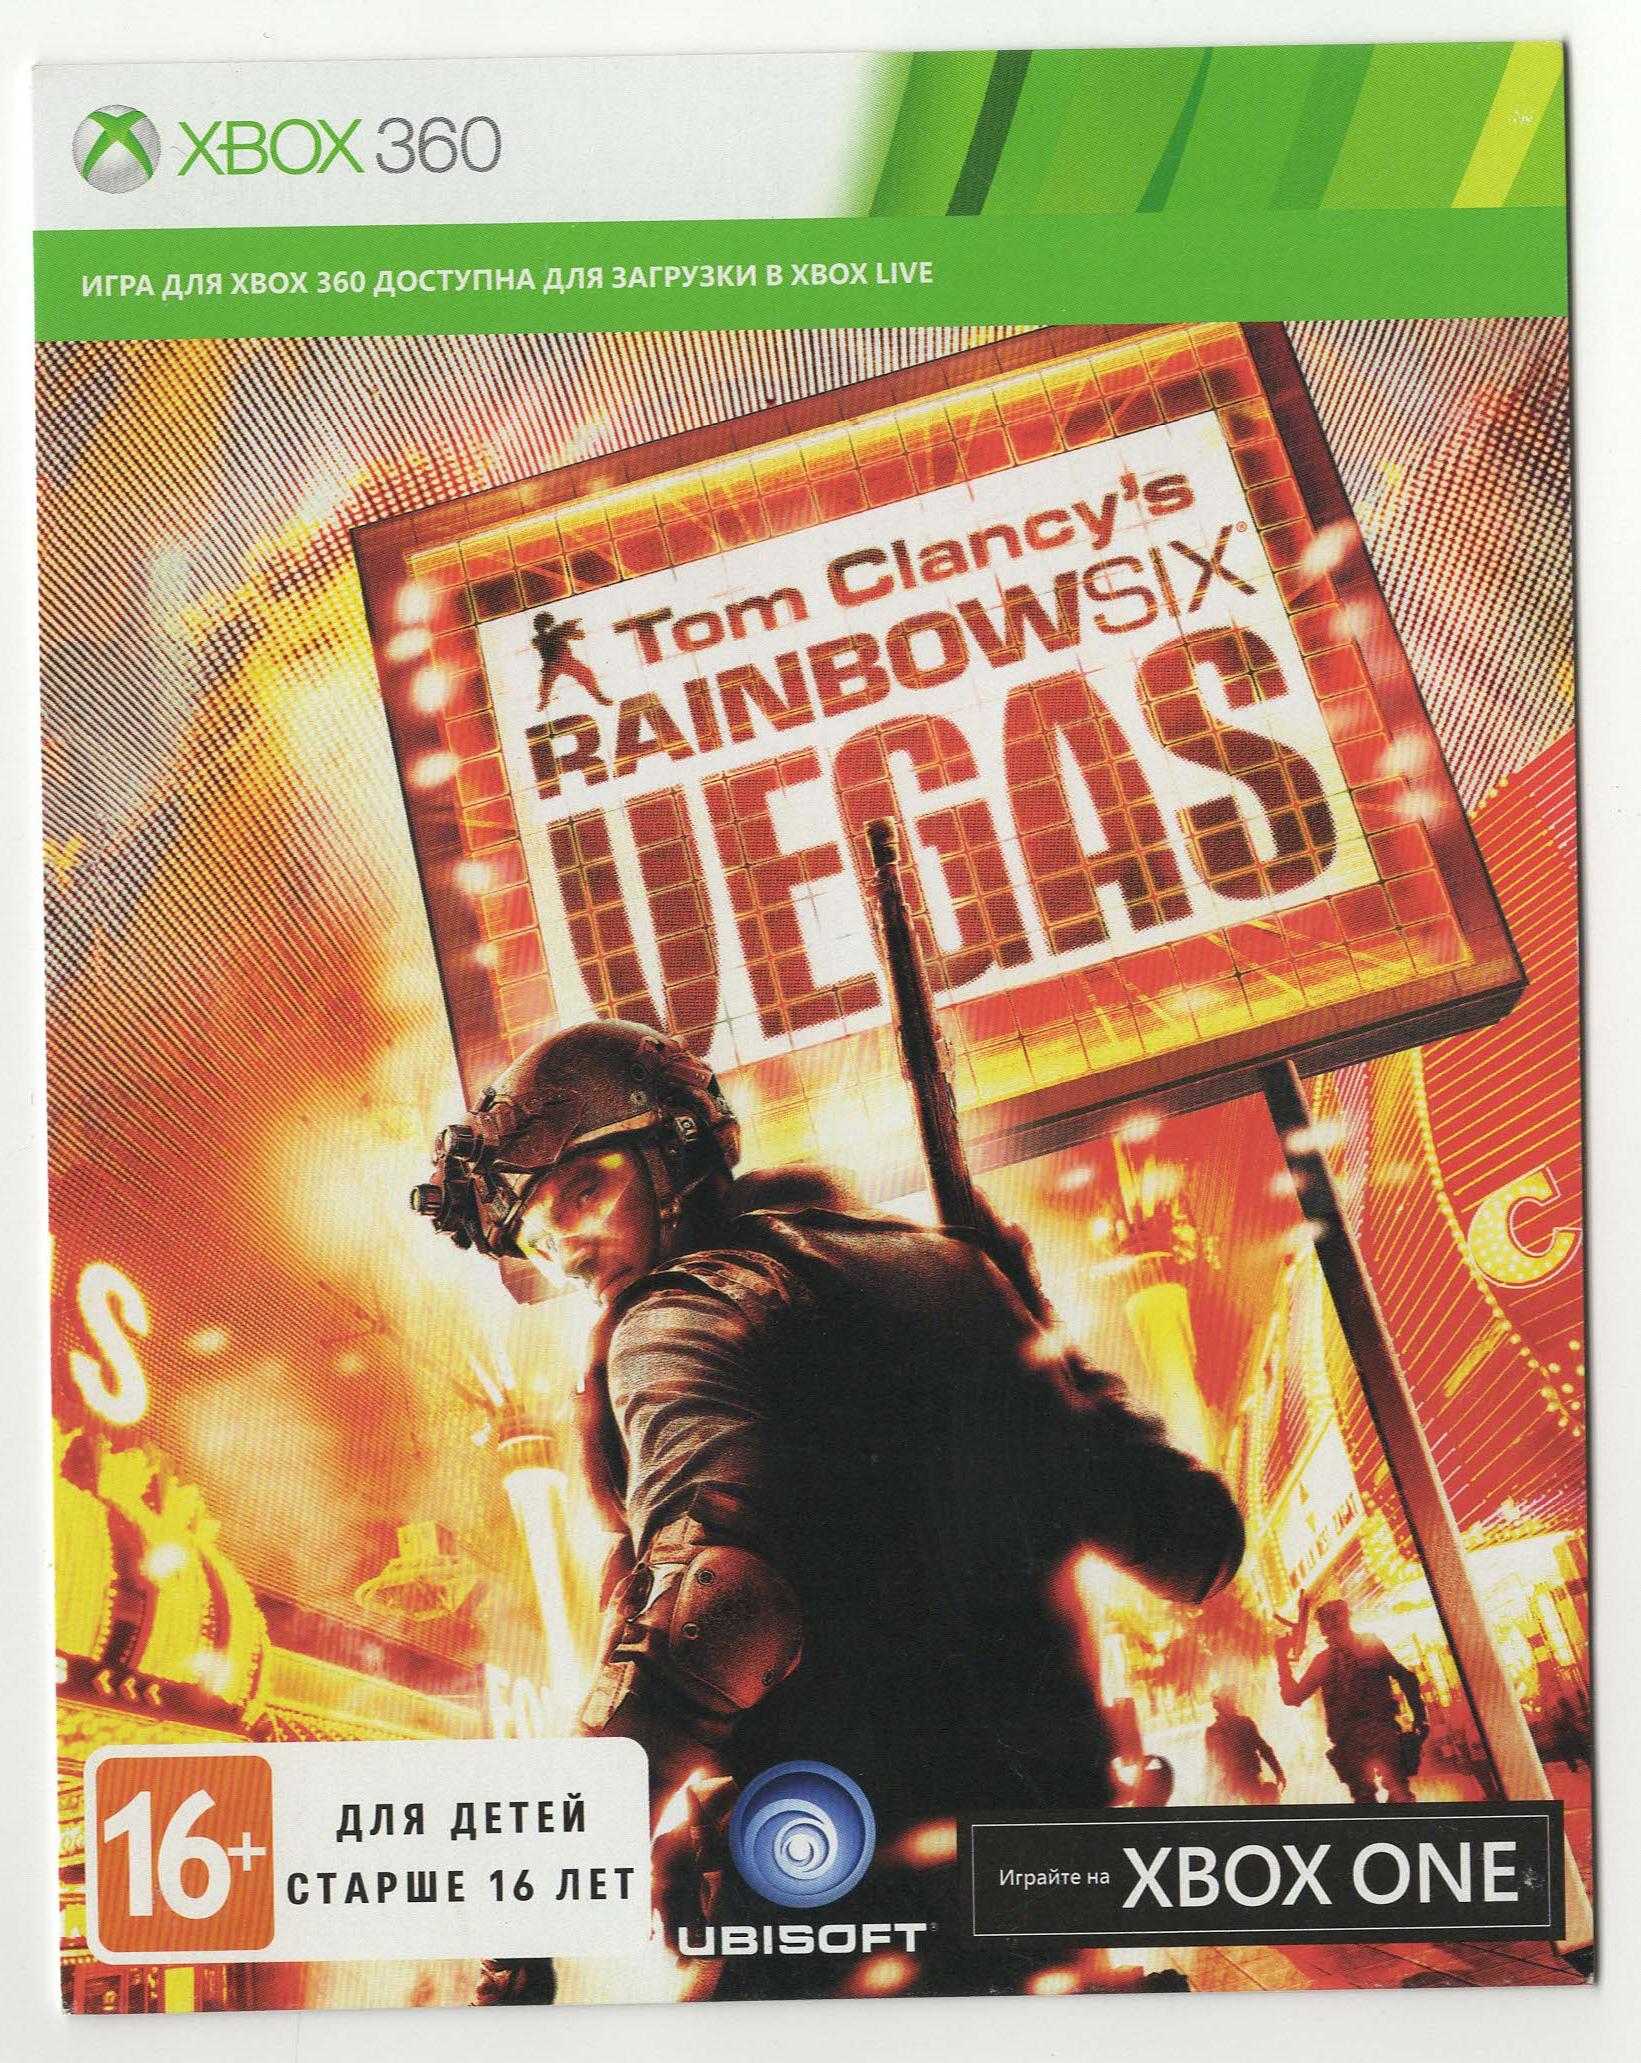 Rainbow Six Vegas download code for Xbox 360/One